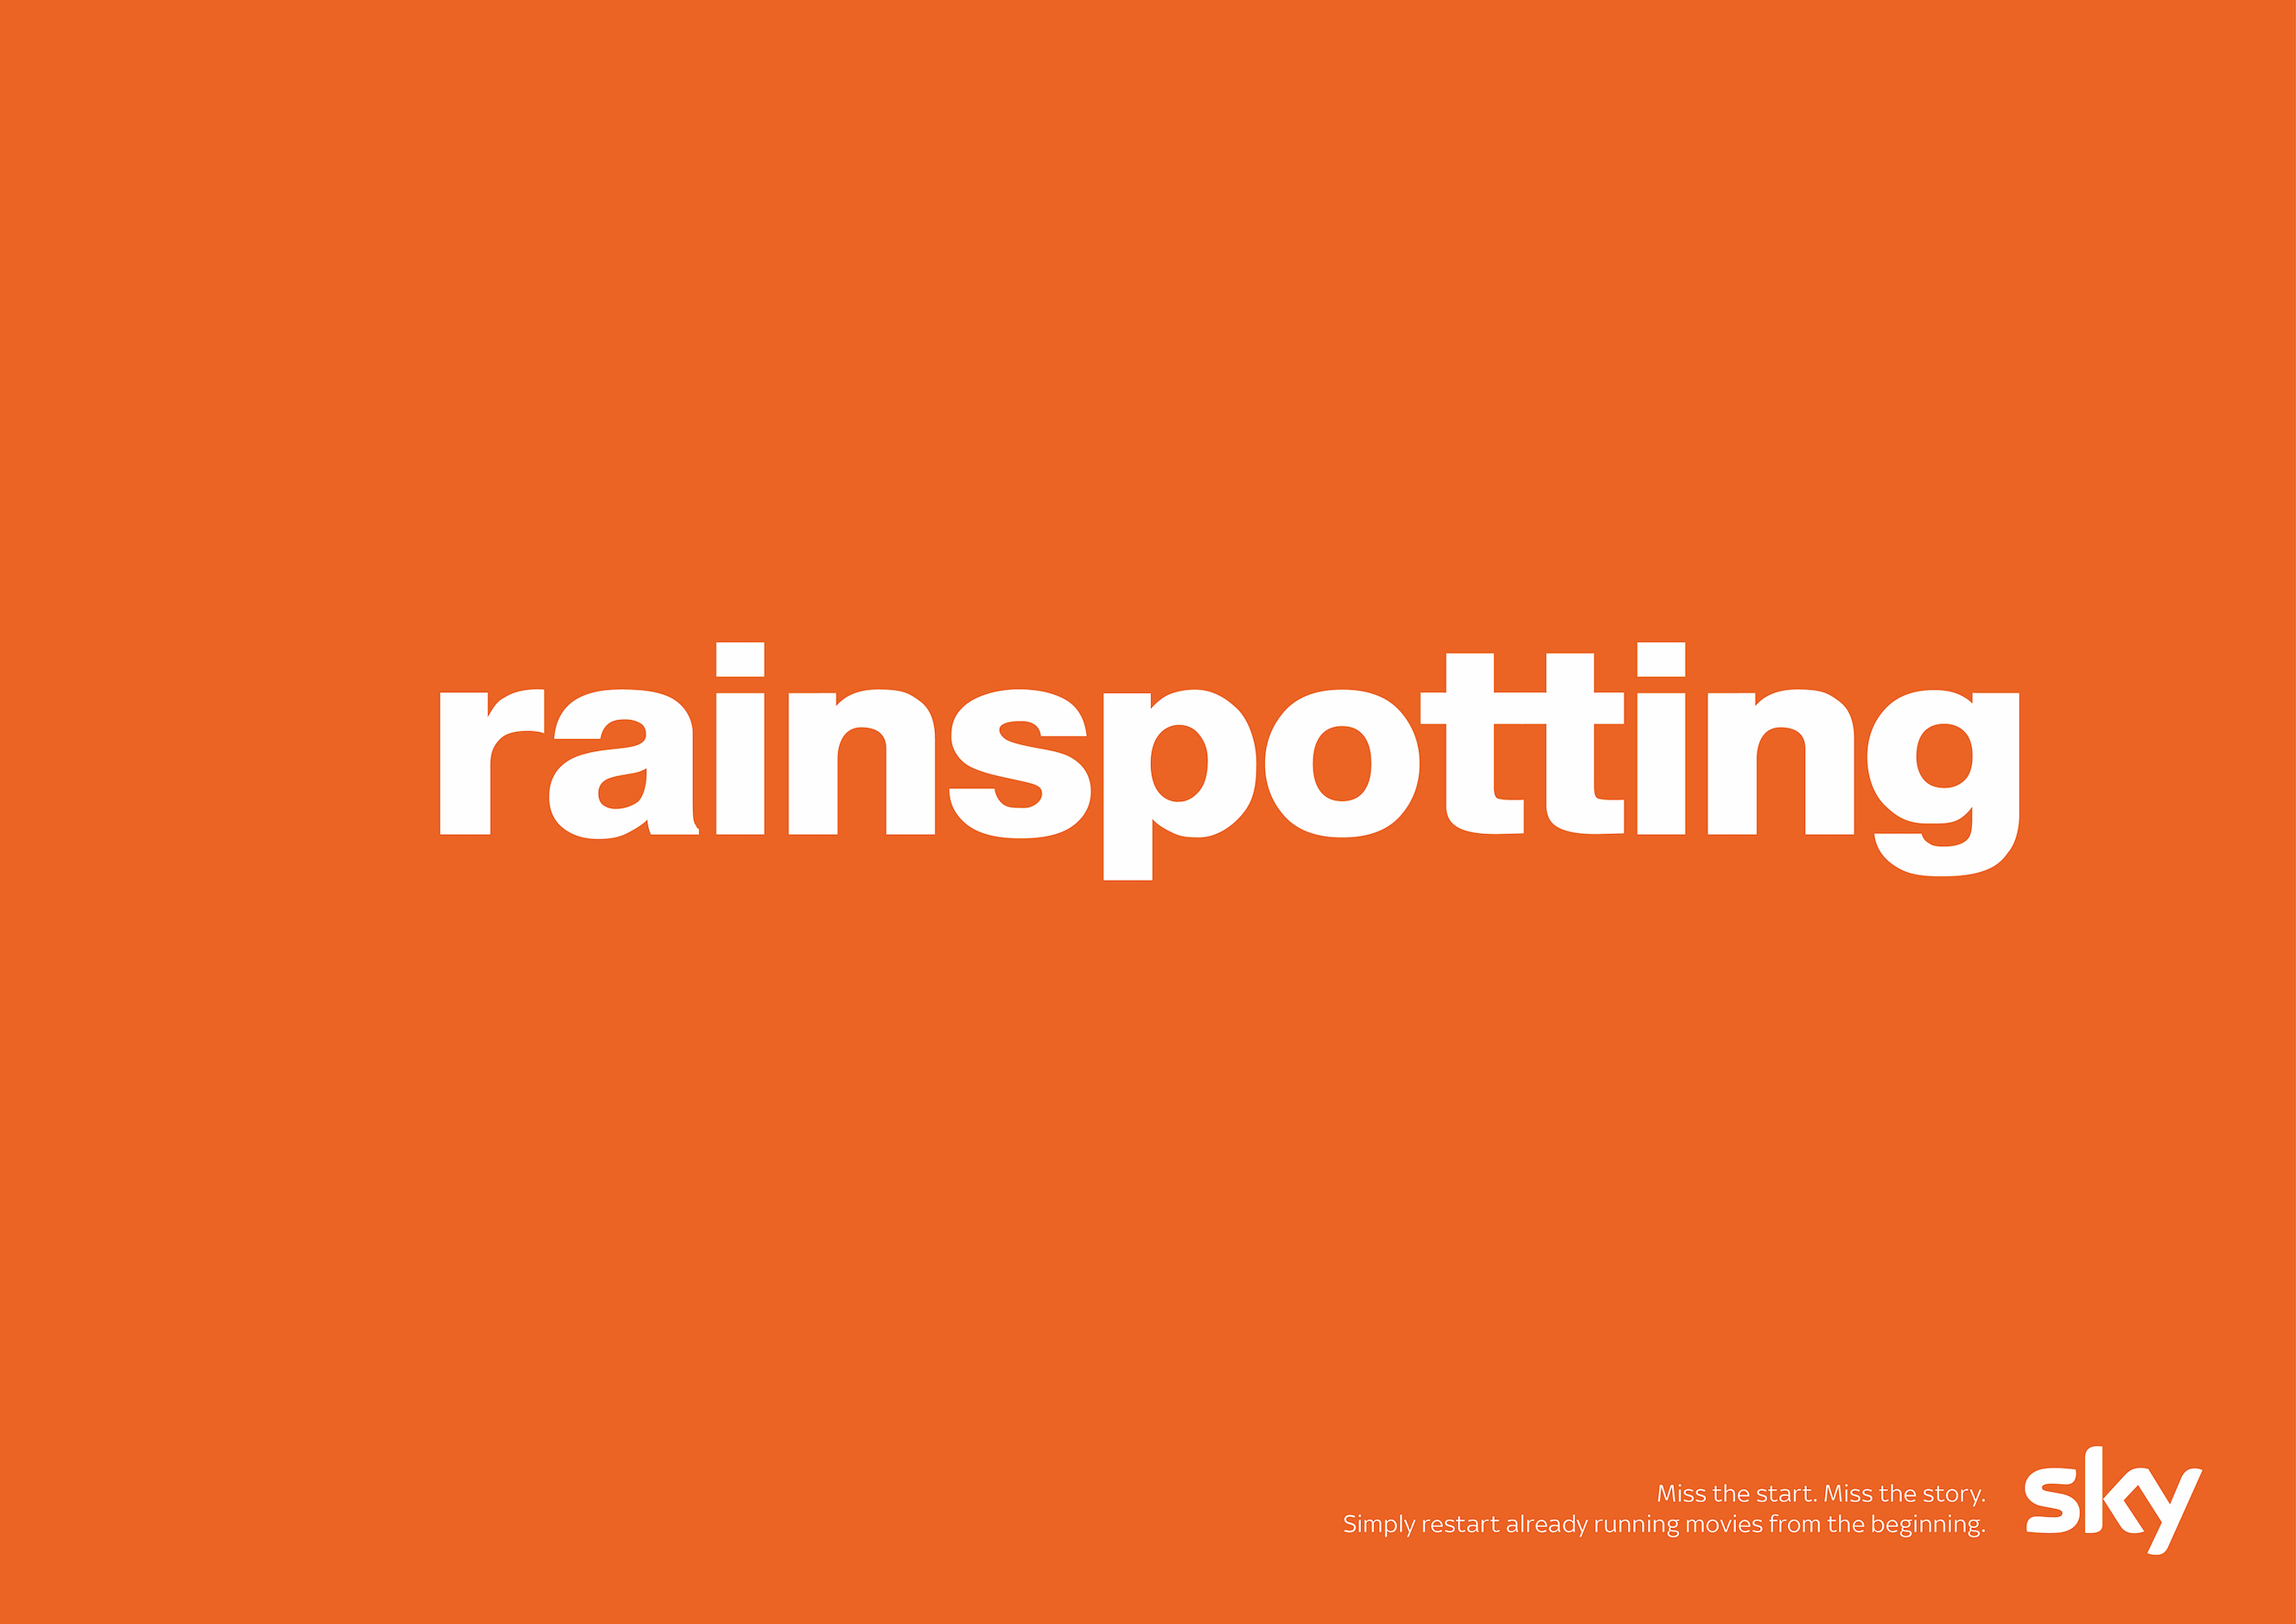 Miss the start. Miss the story - Sky (Trainspotting)